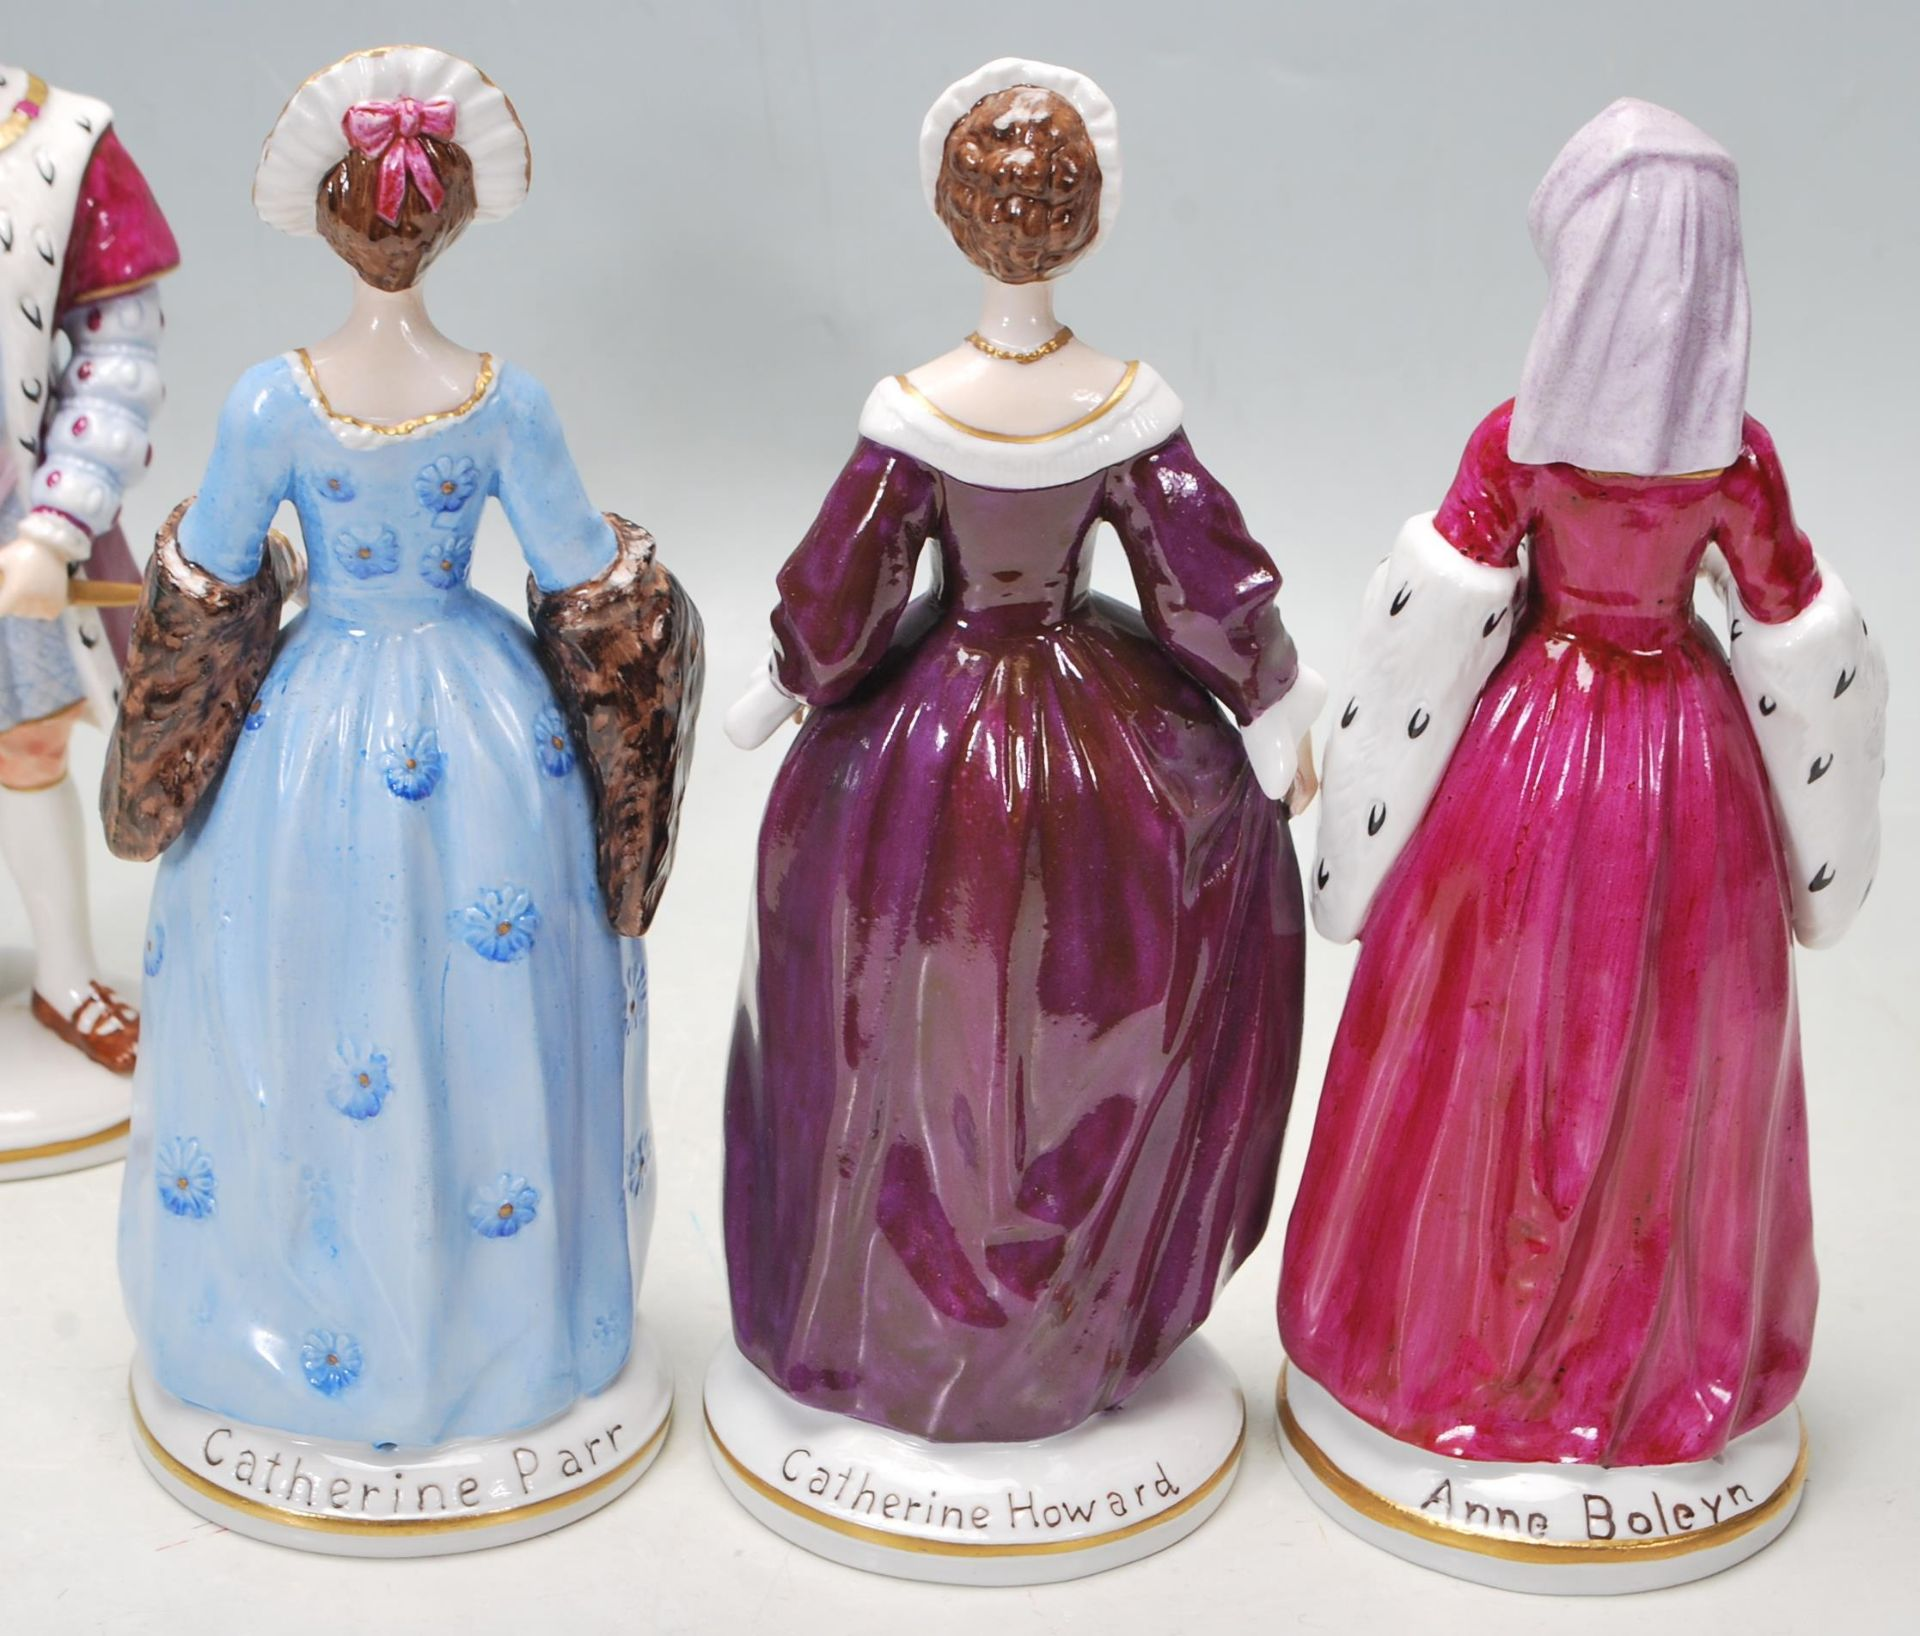 COLLECTION OF SEVEN SITZEDORF CERAMIC PORCELAIN FIGURINES OF HENRY VIII AND HIS SIX WIVES - Image 5 of 8